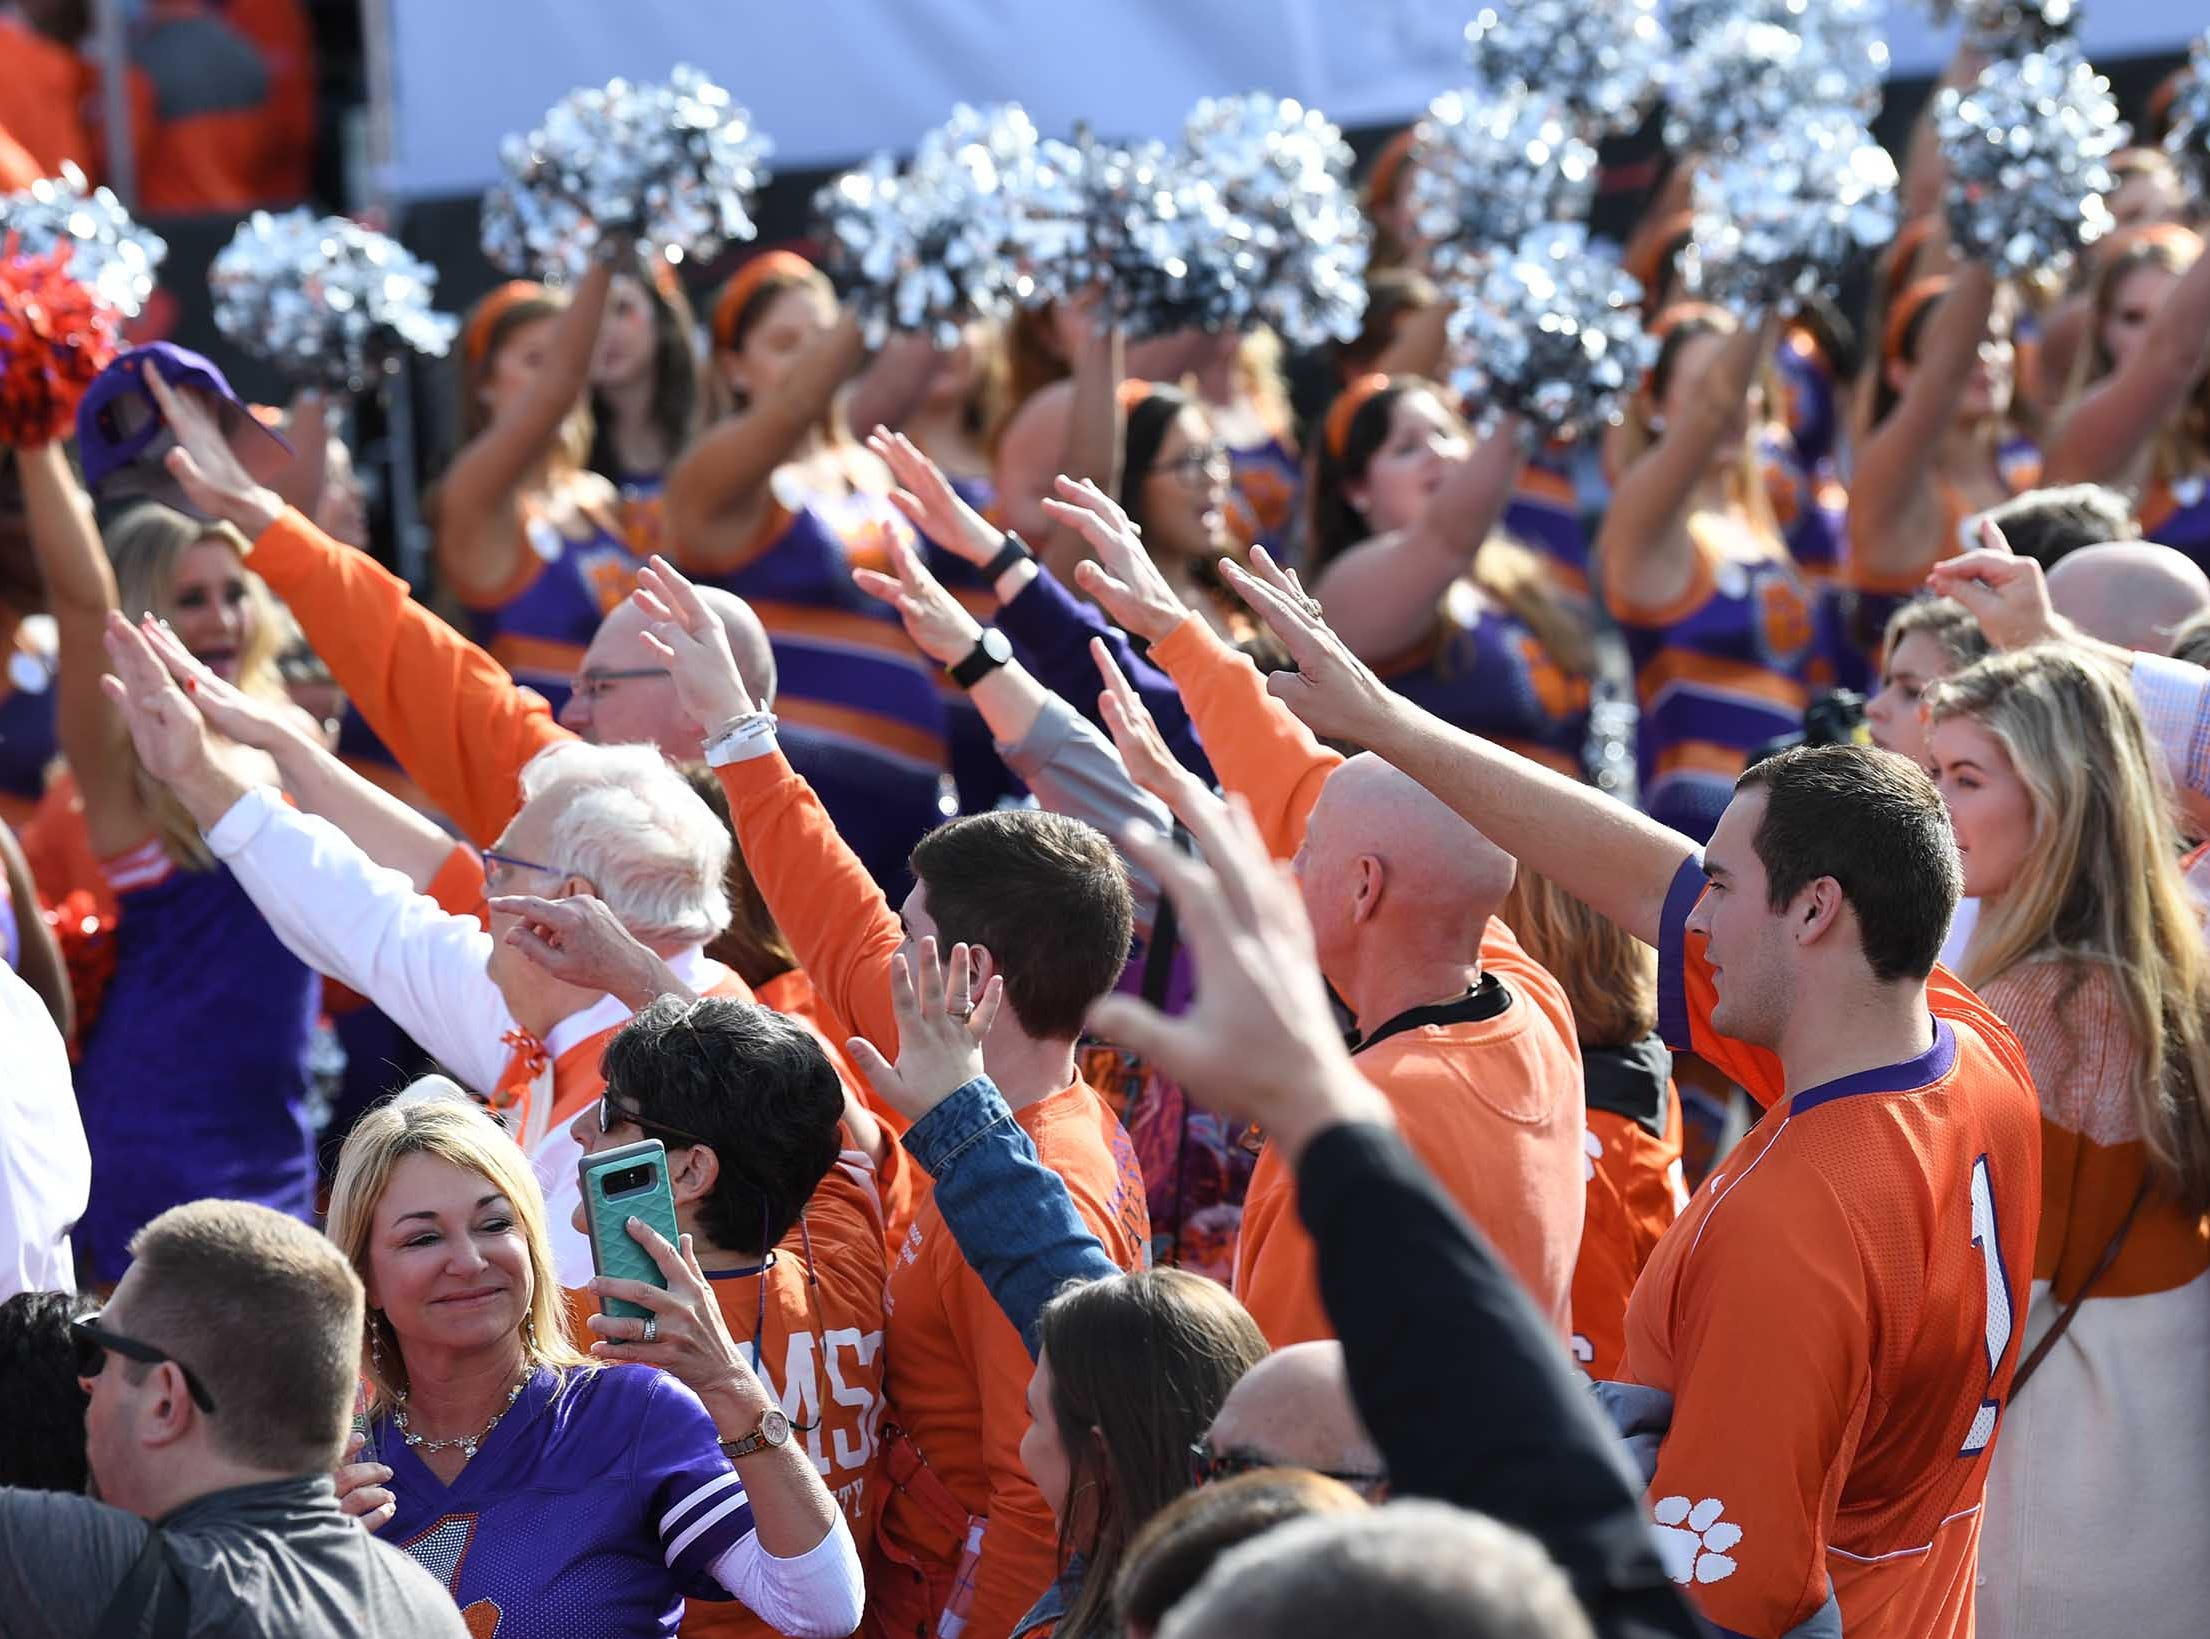 Clemson fans participate at the College Football Championship Playoff Tailgate outside Levi's Stadium in Santa Clara, California Monday, January 7, 2019.